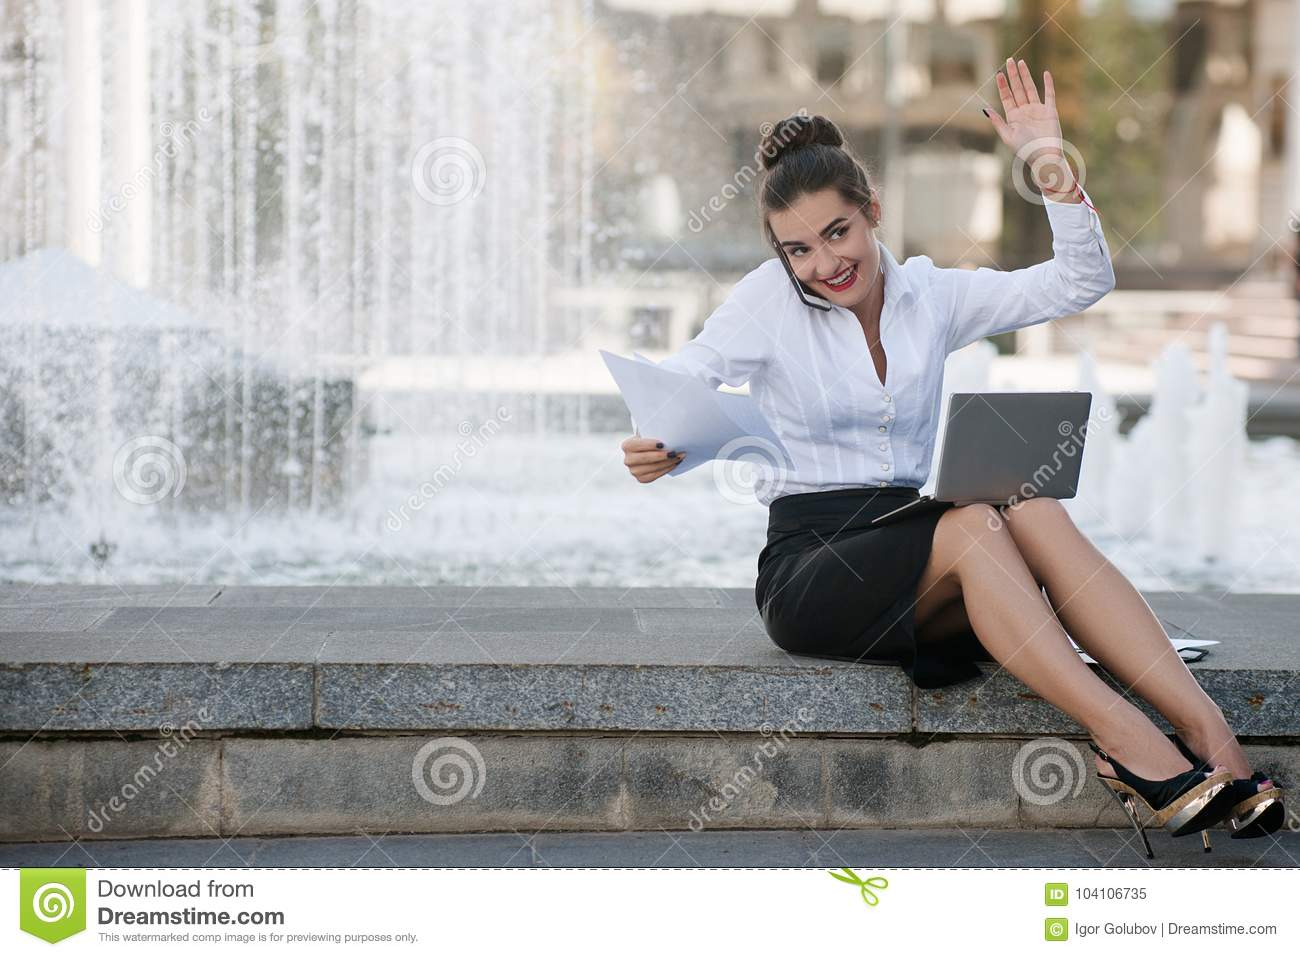 https://thumbs.dreamstime.com/z/business-woman-lifestyle-laptop-outdoor-work-business-meeting-happy-woman-lifestyle-laptop-outdoor-work-proccess-concept-104106735.jpg